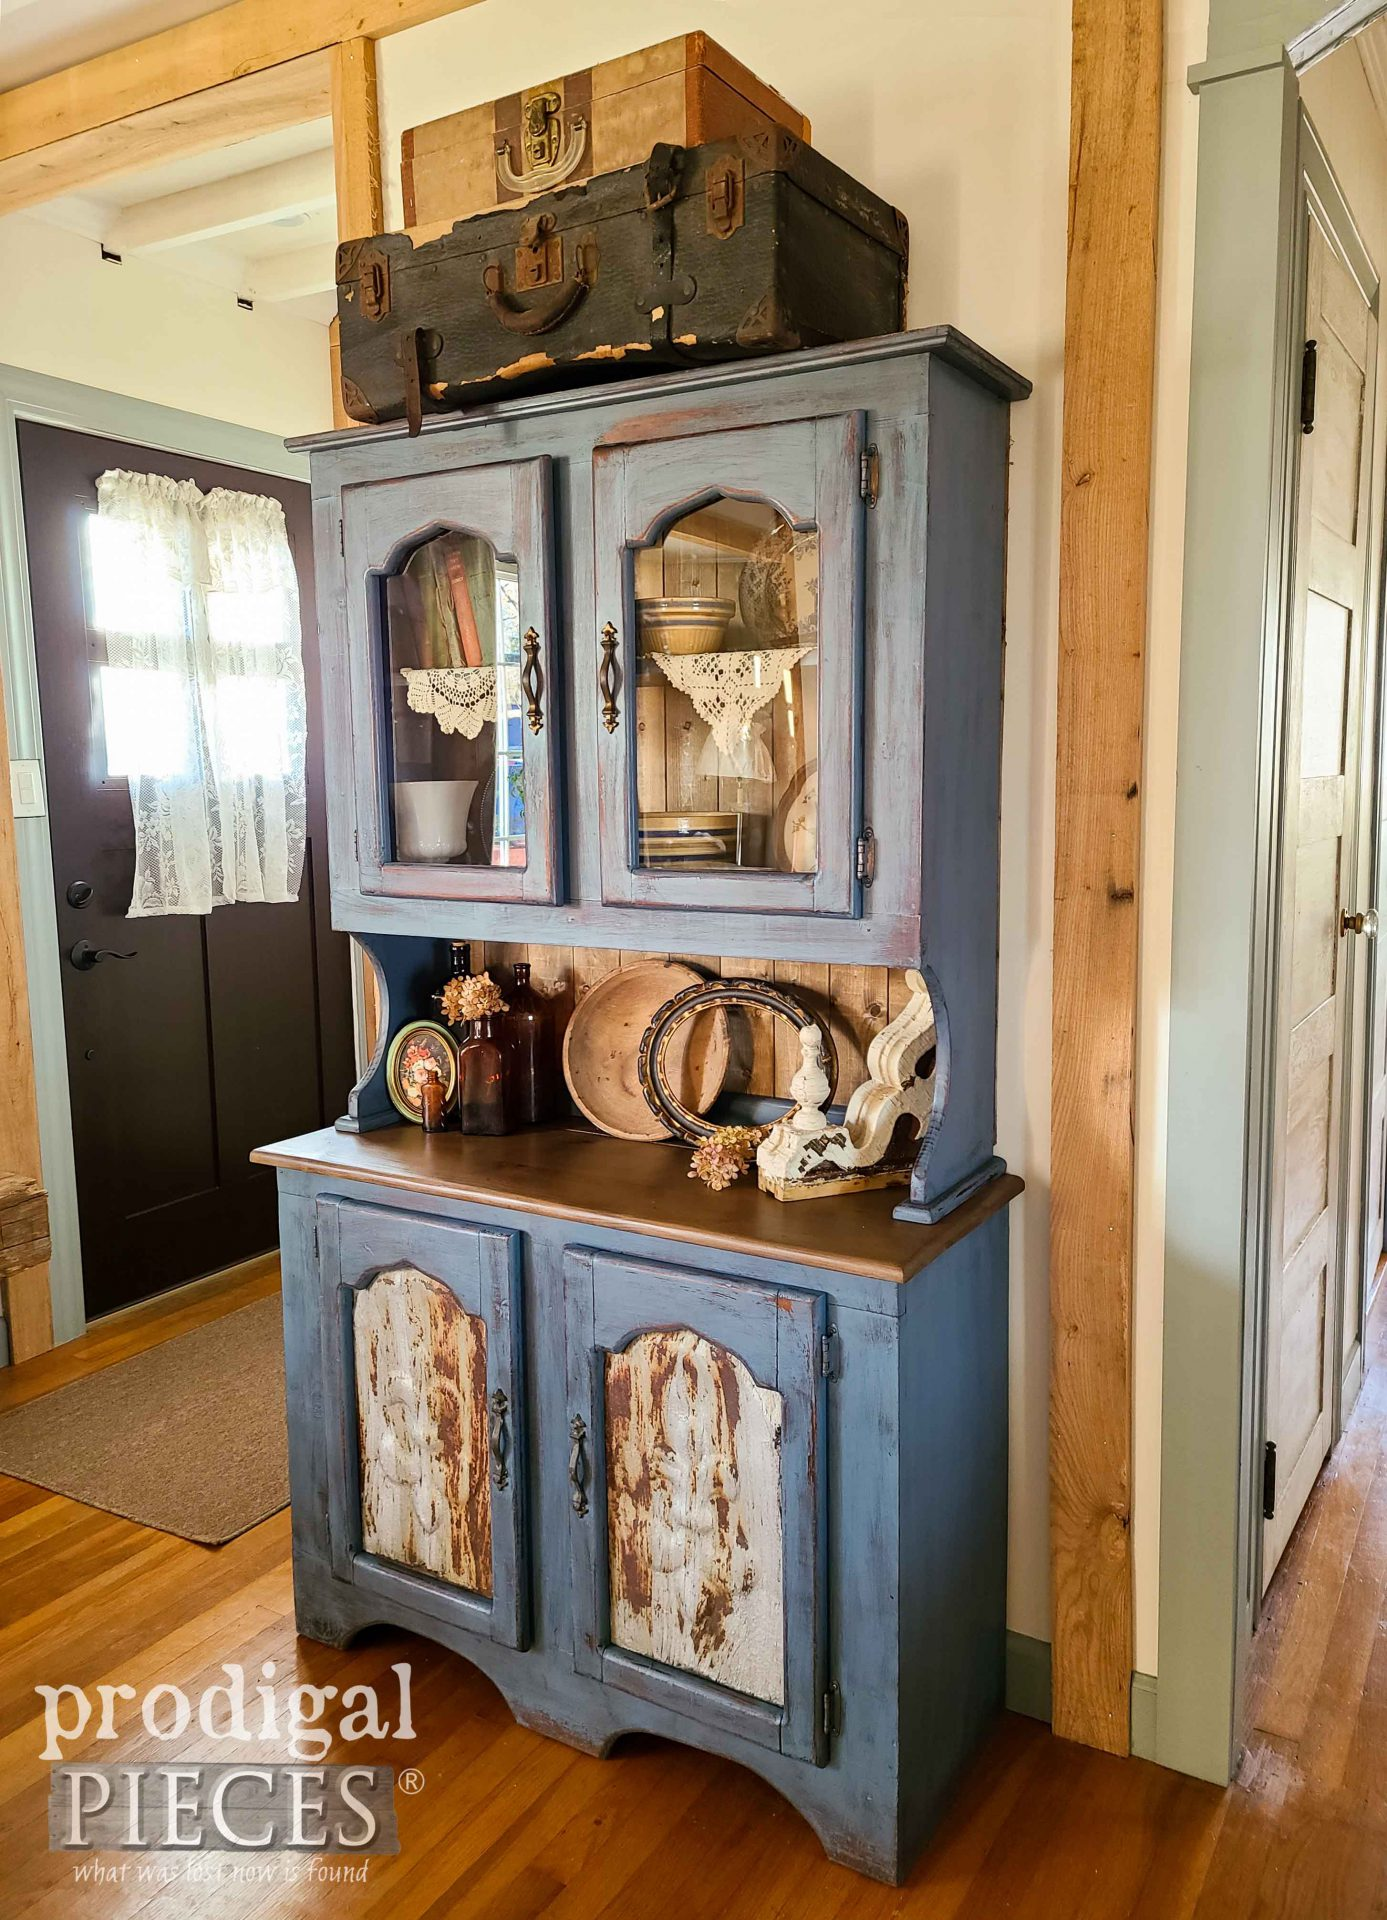 Rustic Farmhouse Blue Painted Pine Hutch with Salvage Style by Larissa of Prodigal Pieces | prodigalpieces.com #prodigalpieces #home #farmhouse #homedecor #diy